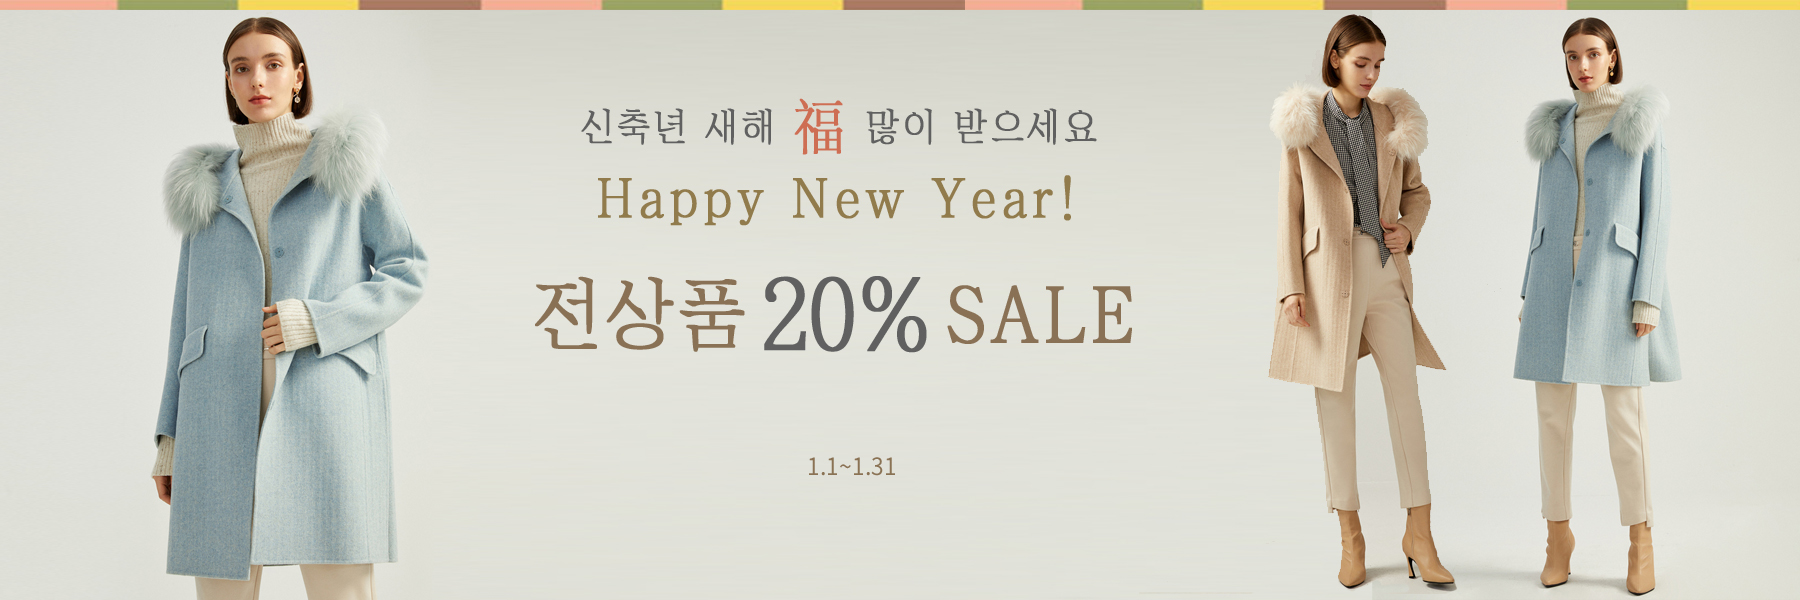 Happy New Year! 1월 20% SALE